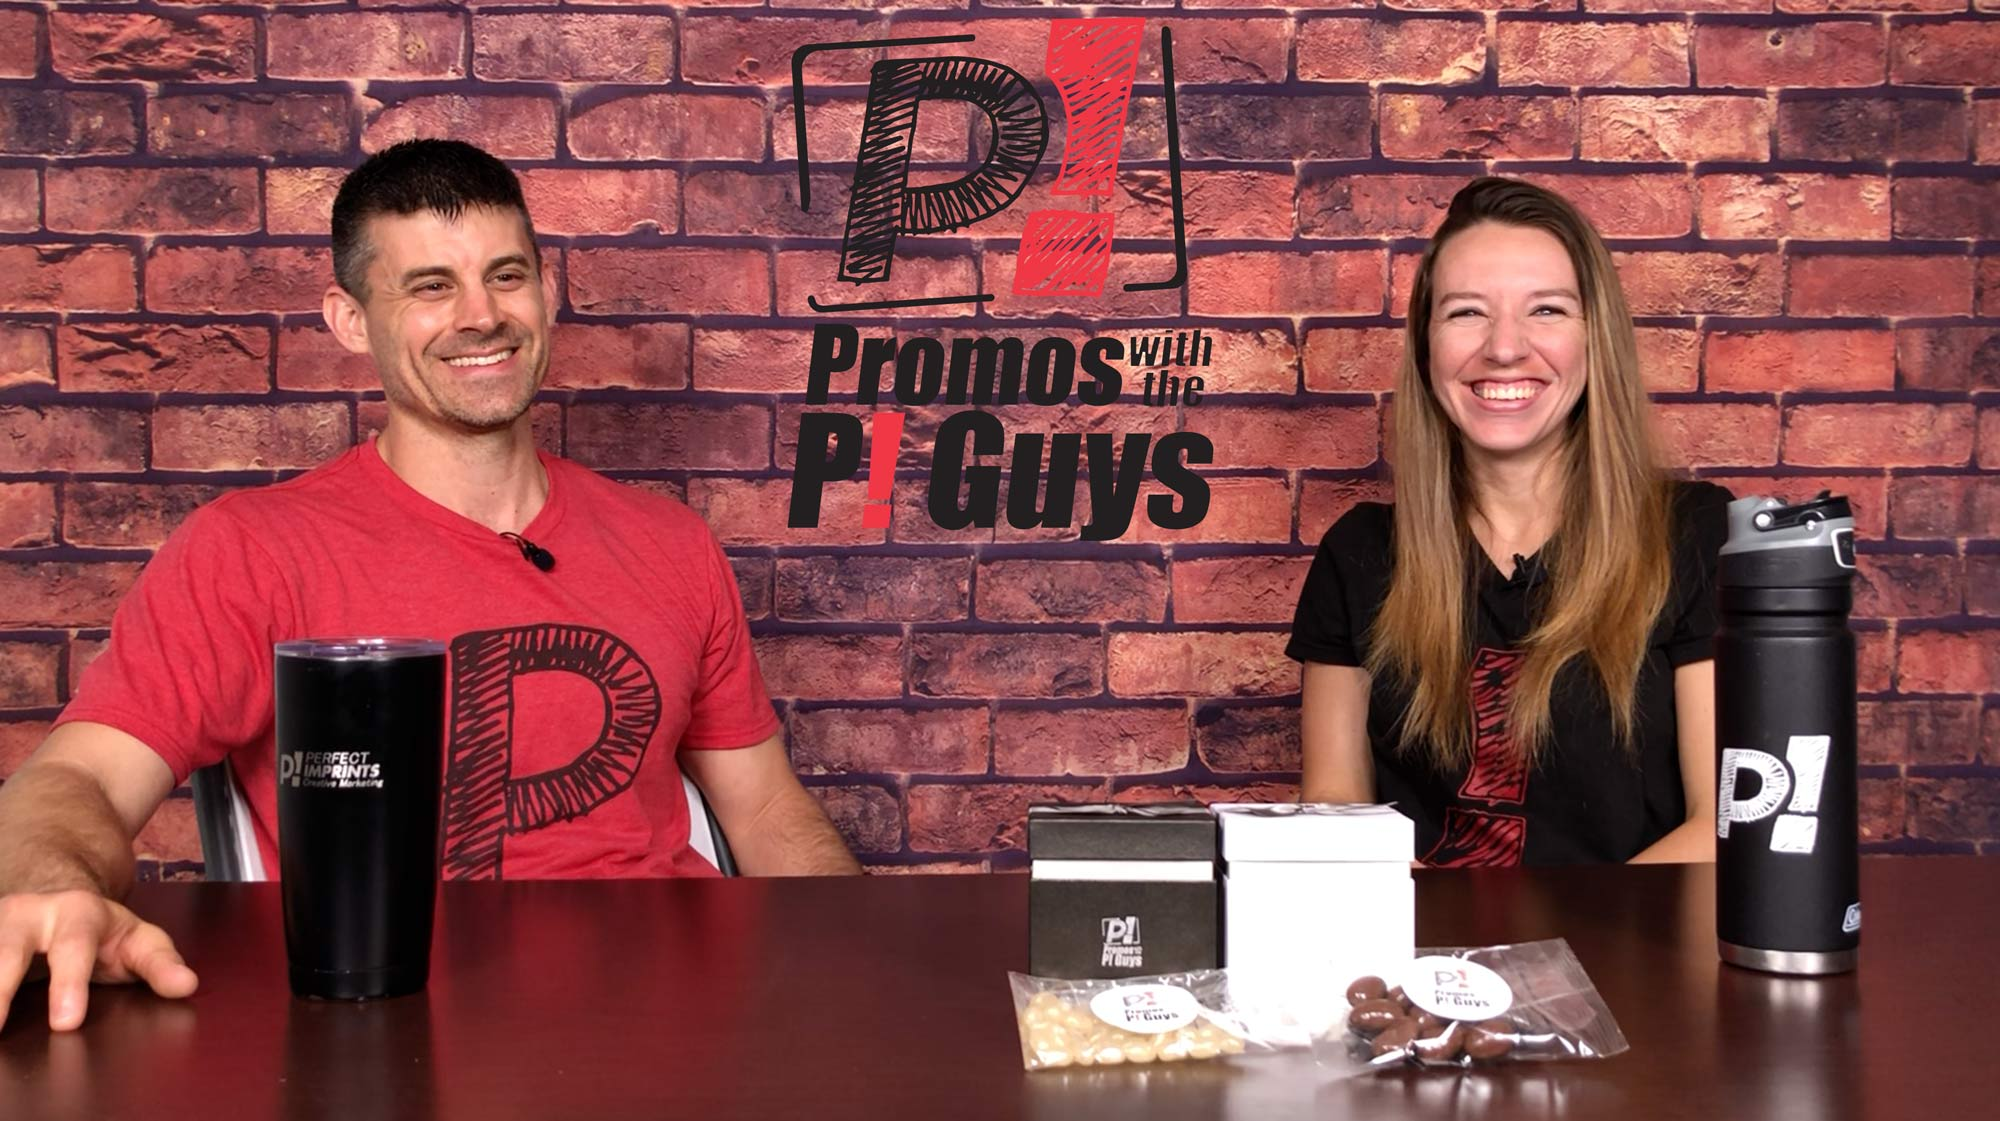 Promos with the P! Guys - Episode 33 - Corporate Chocolate Gifts